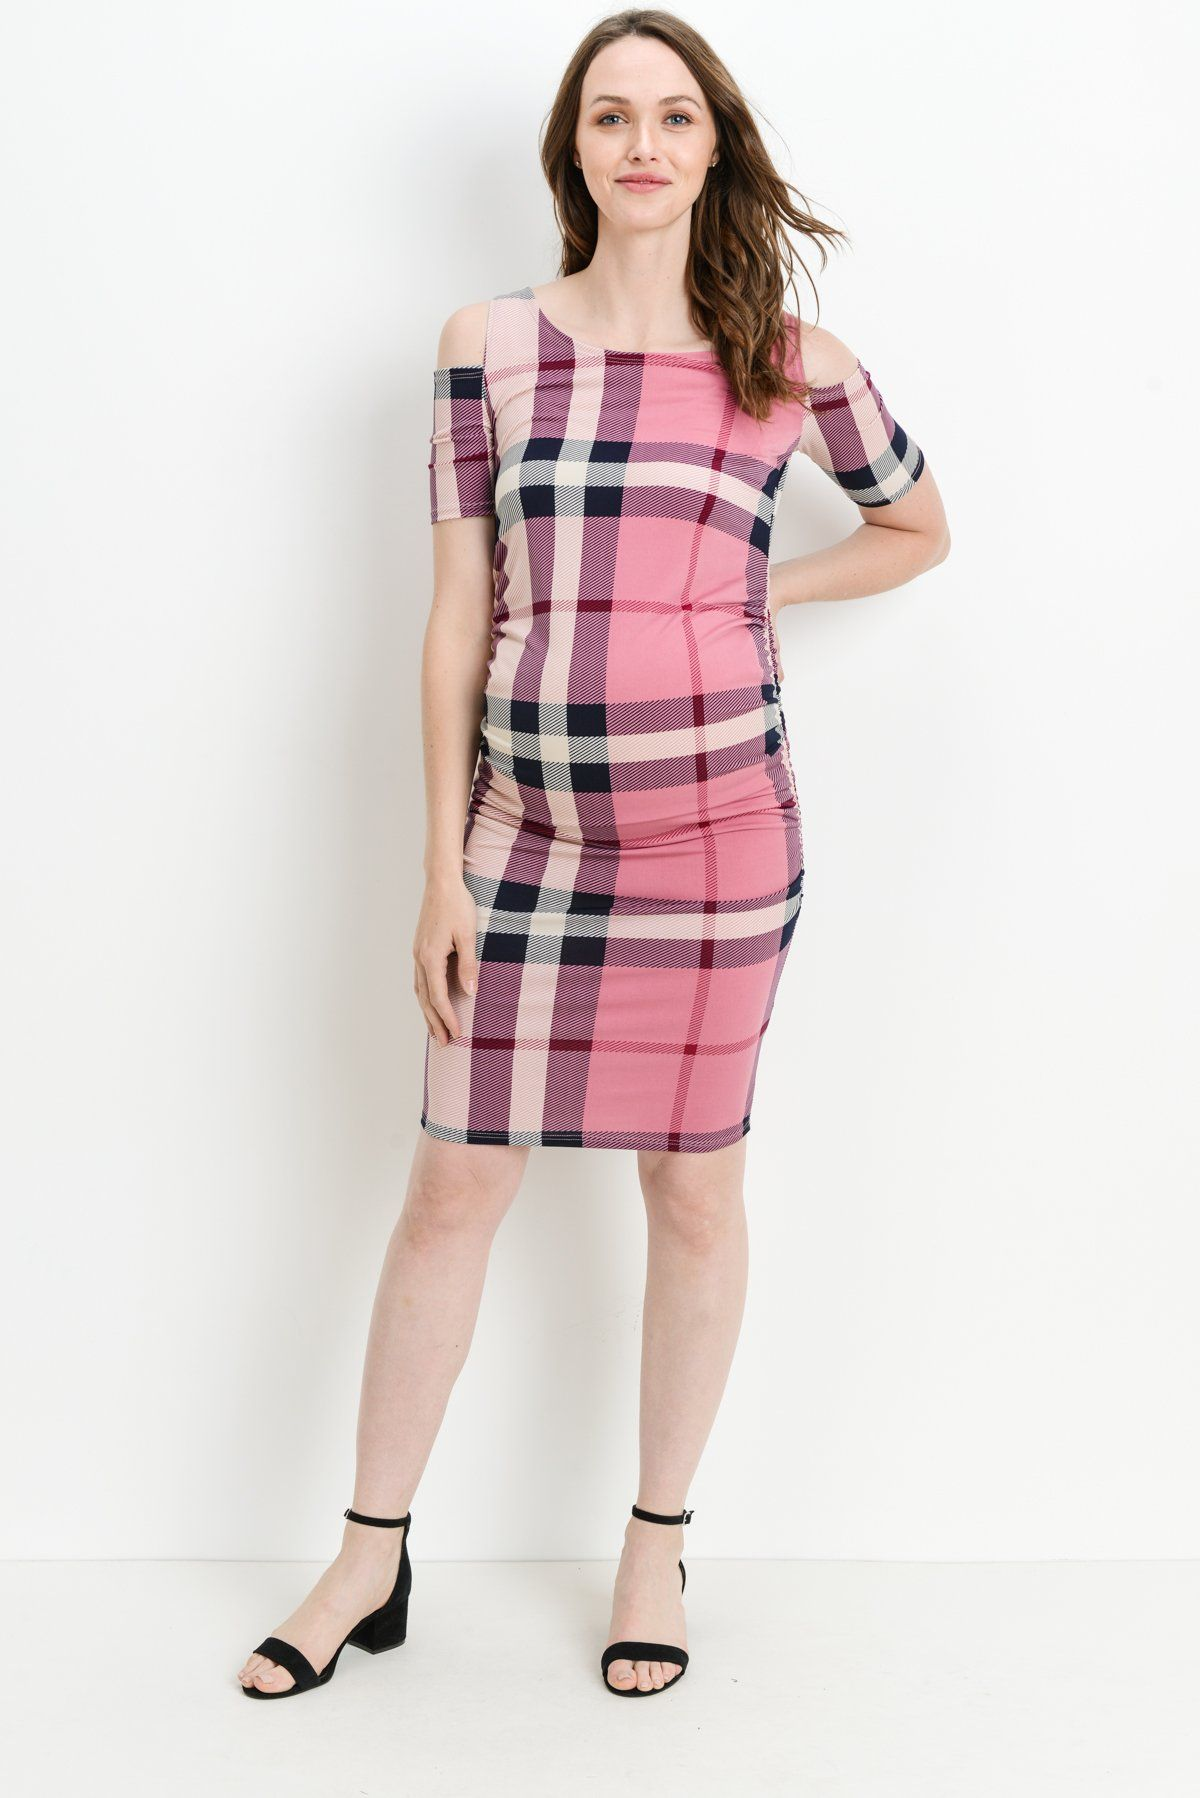 2b1bceba701 Maternity Fashion - Hello MIZ Womens Cold Shoulder Knee Length Fitted Maternity  Dress M Purple Plaid -- Look into this excellent item.